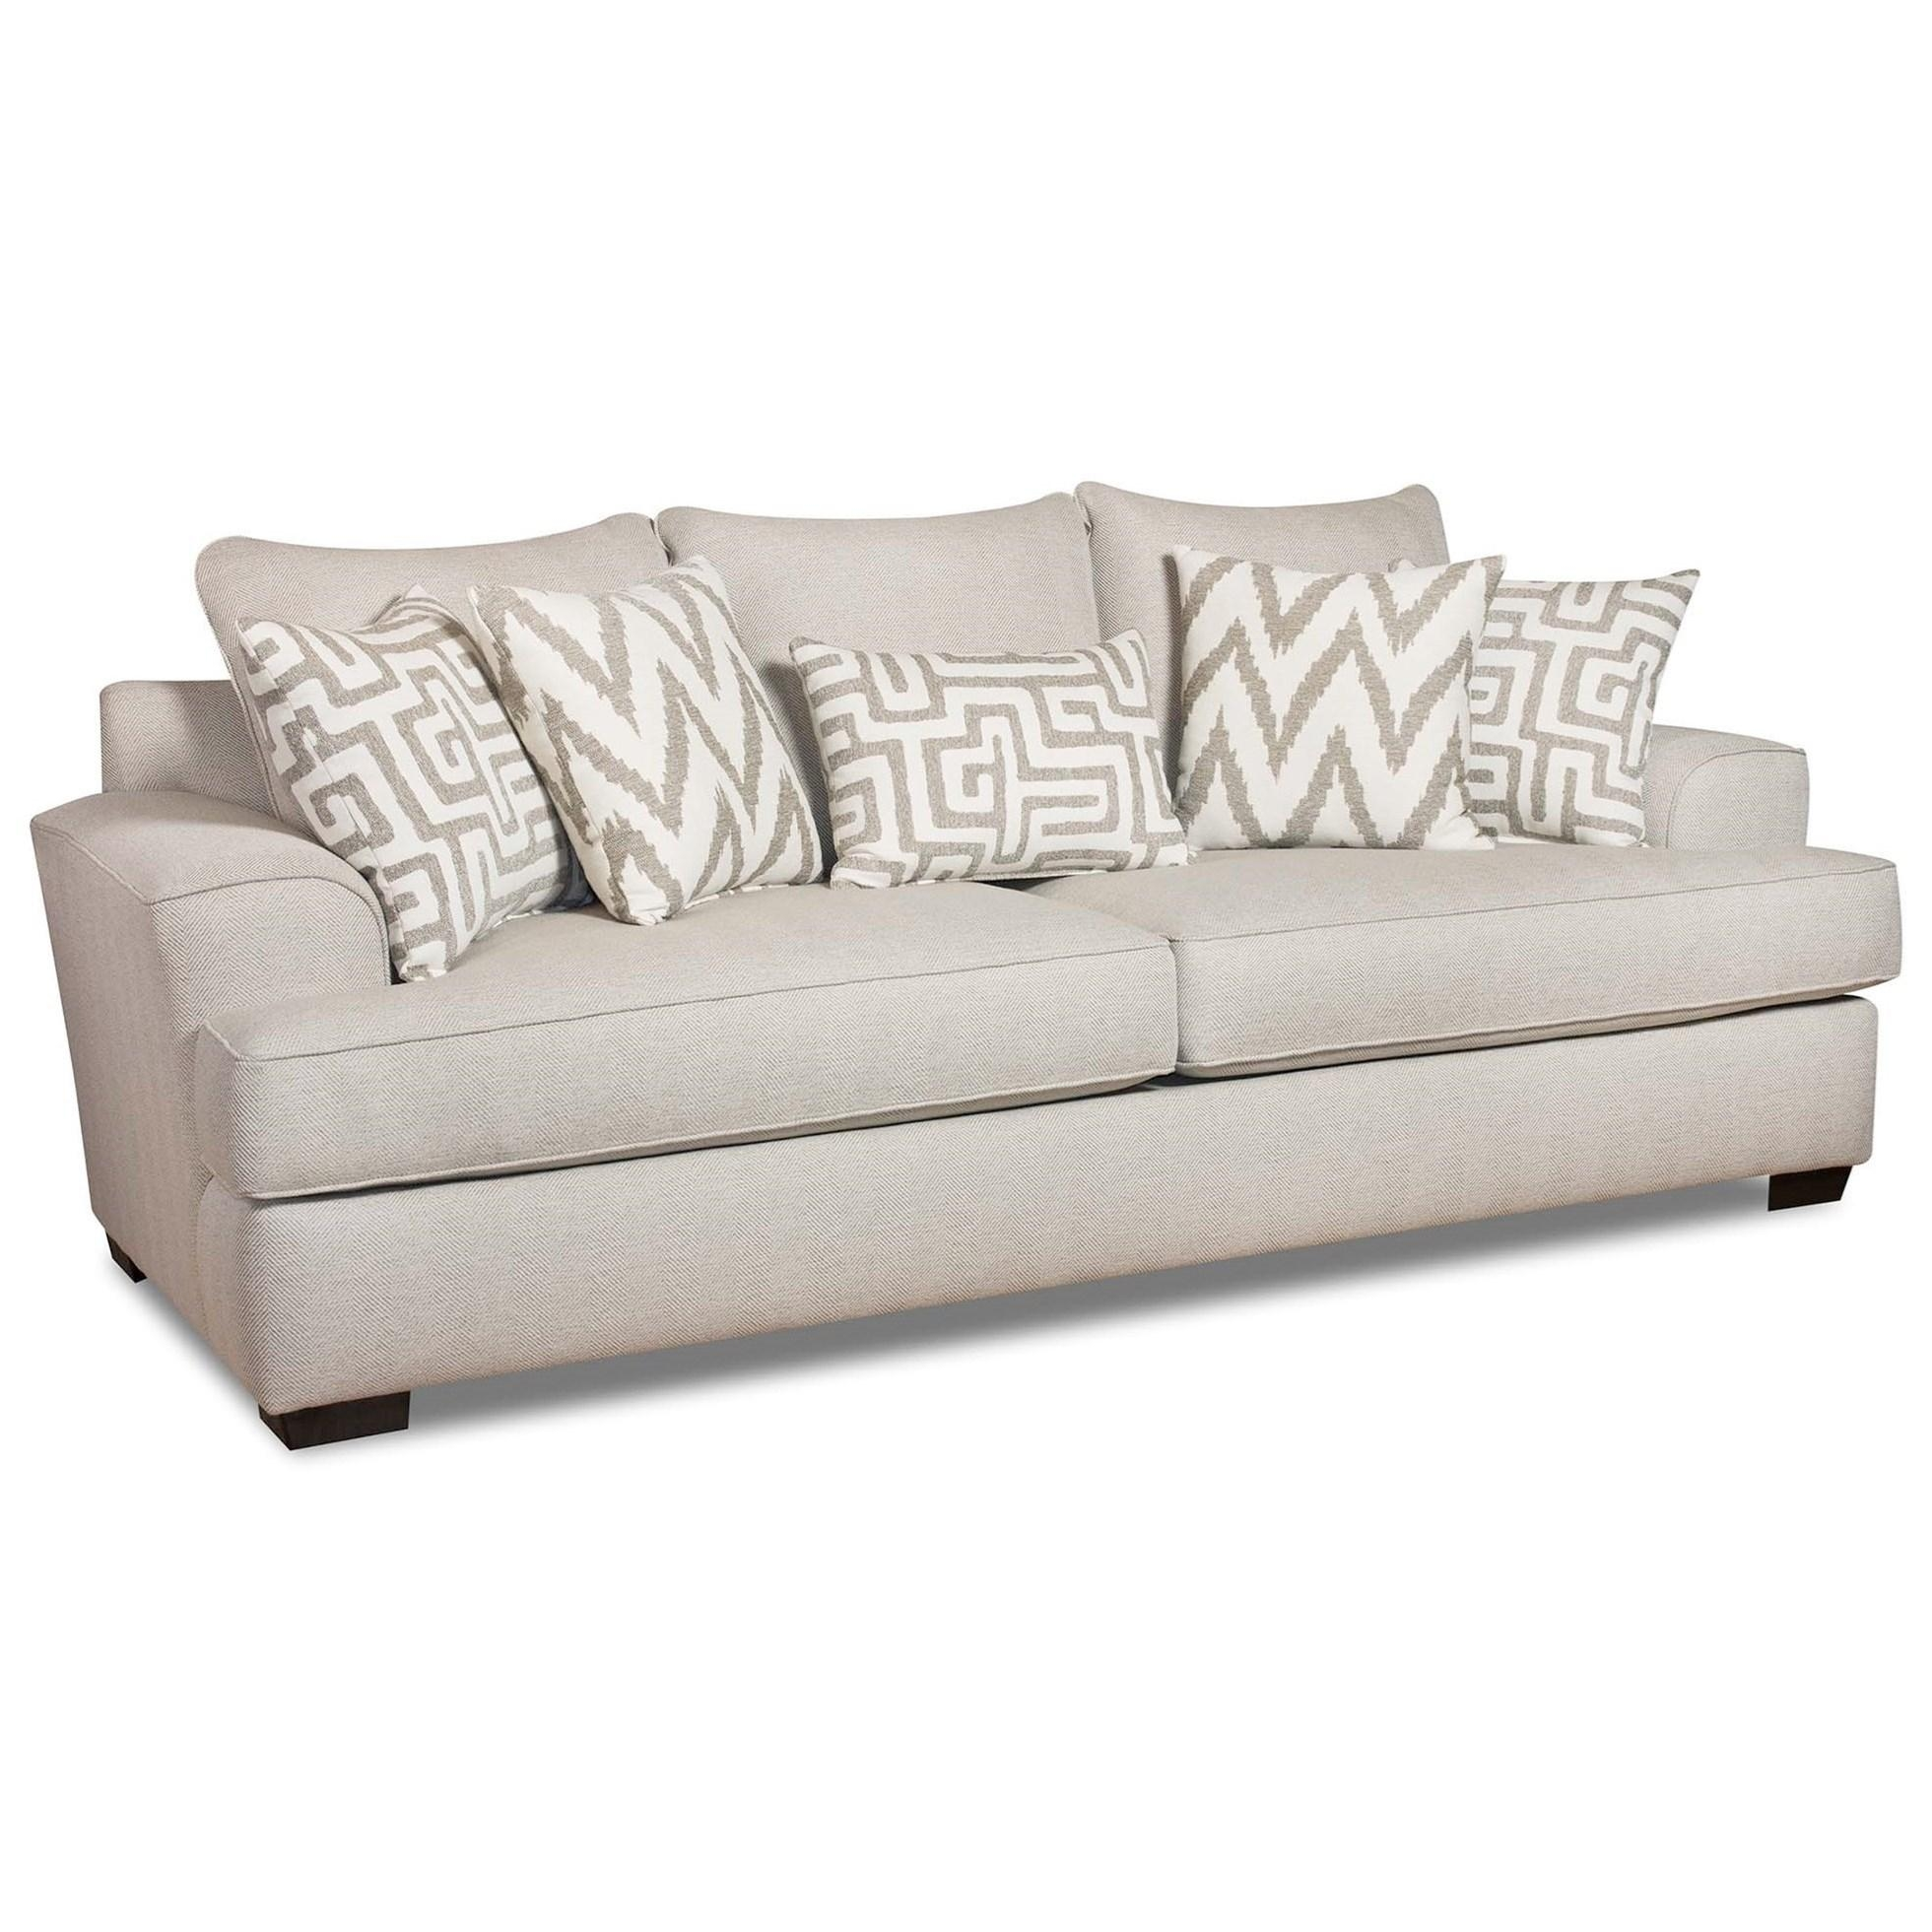 Corinthian Colonist Sofa – Great American Home Store – Sofas Pertaining To Corinthian Sofas (Image 9 of 20)